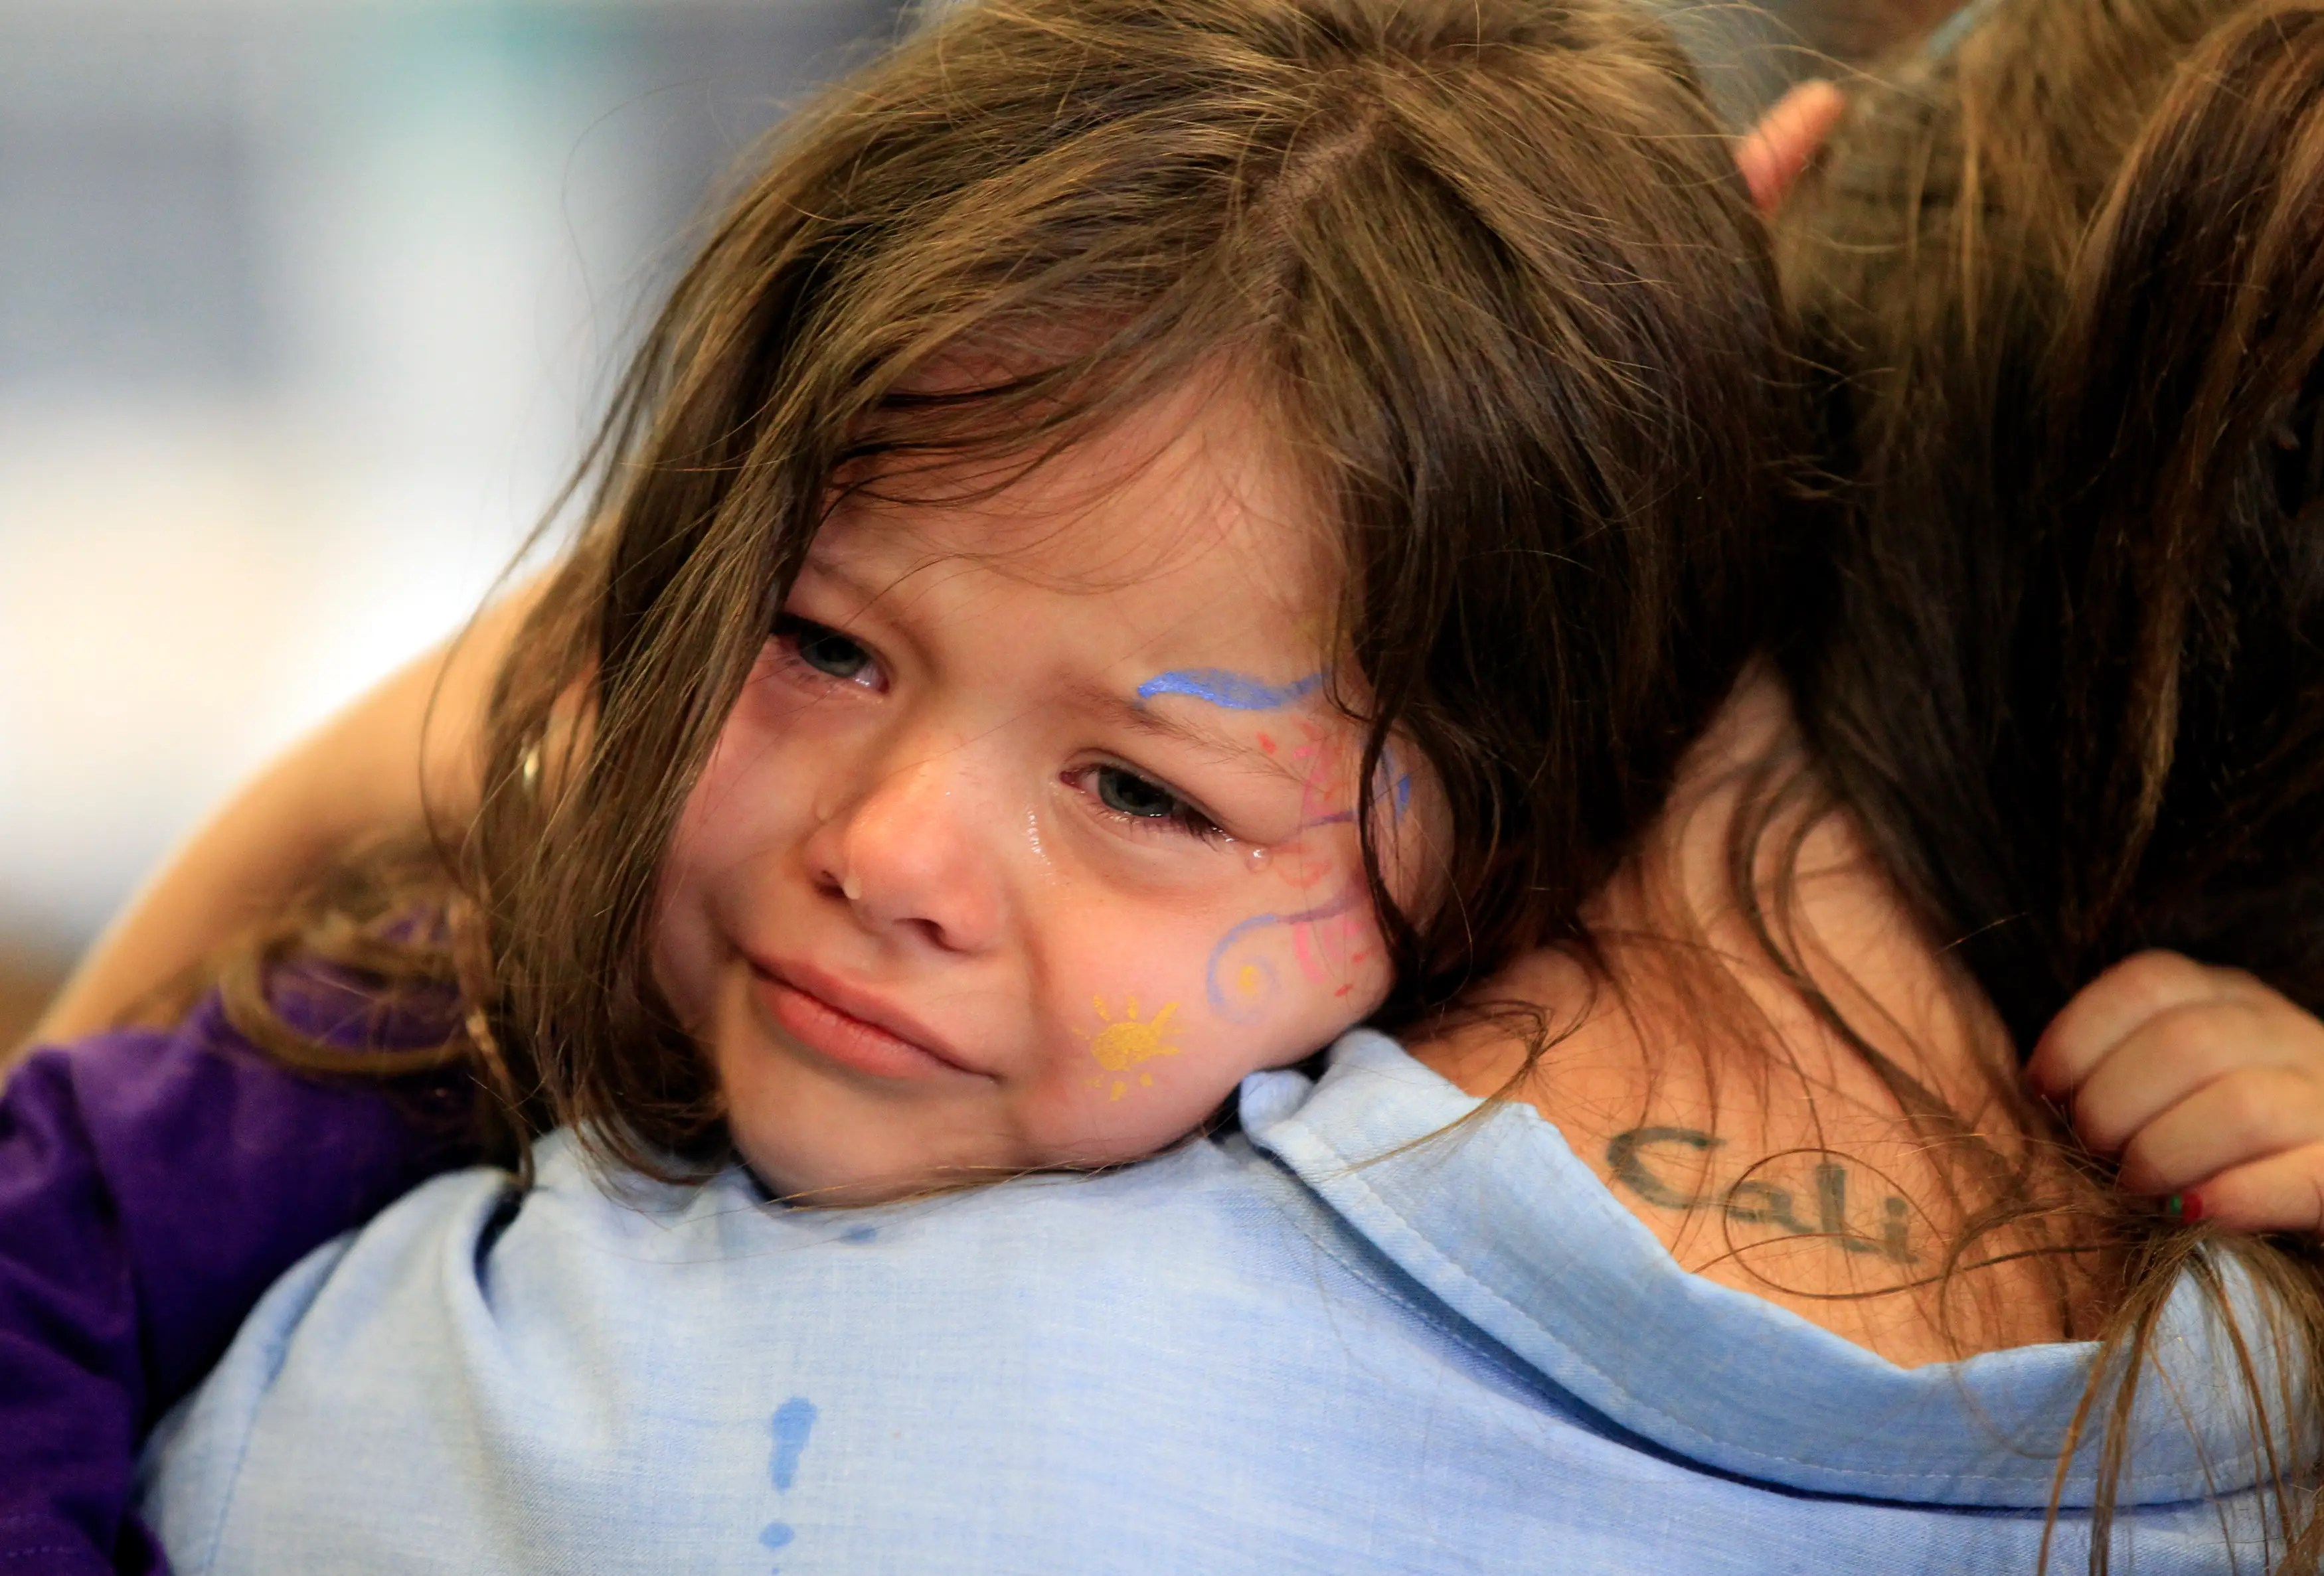 More than 60% of parents in prison report being held more than 100 miles from their children, making it difficult and expensive to maintain strong relationships between parents and children.